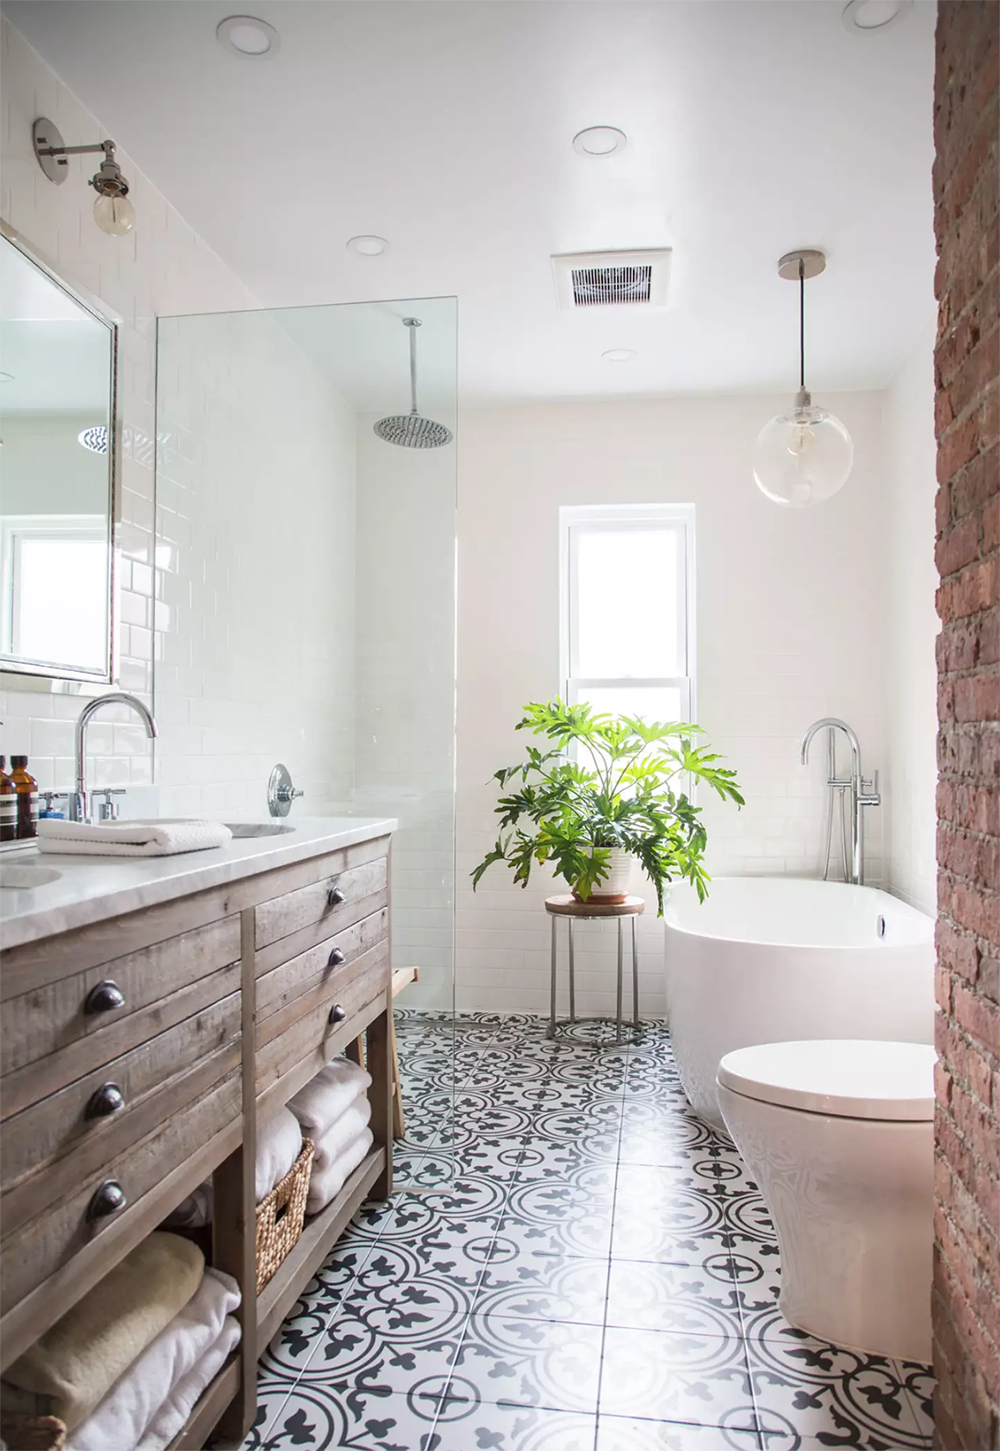 One Room Challenge: Our Plans To Maximize A Small Bathroom | Design ...